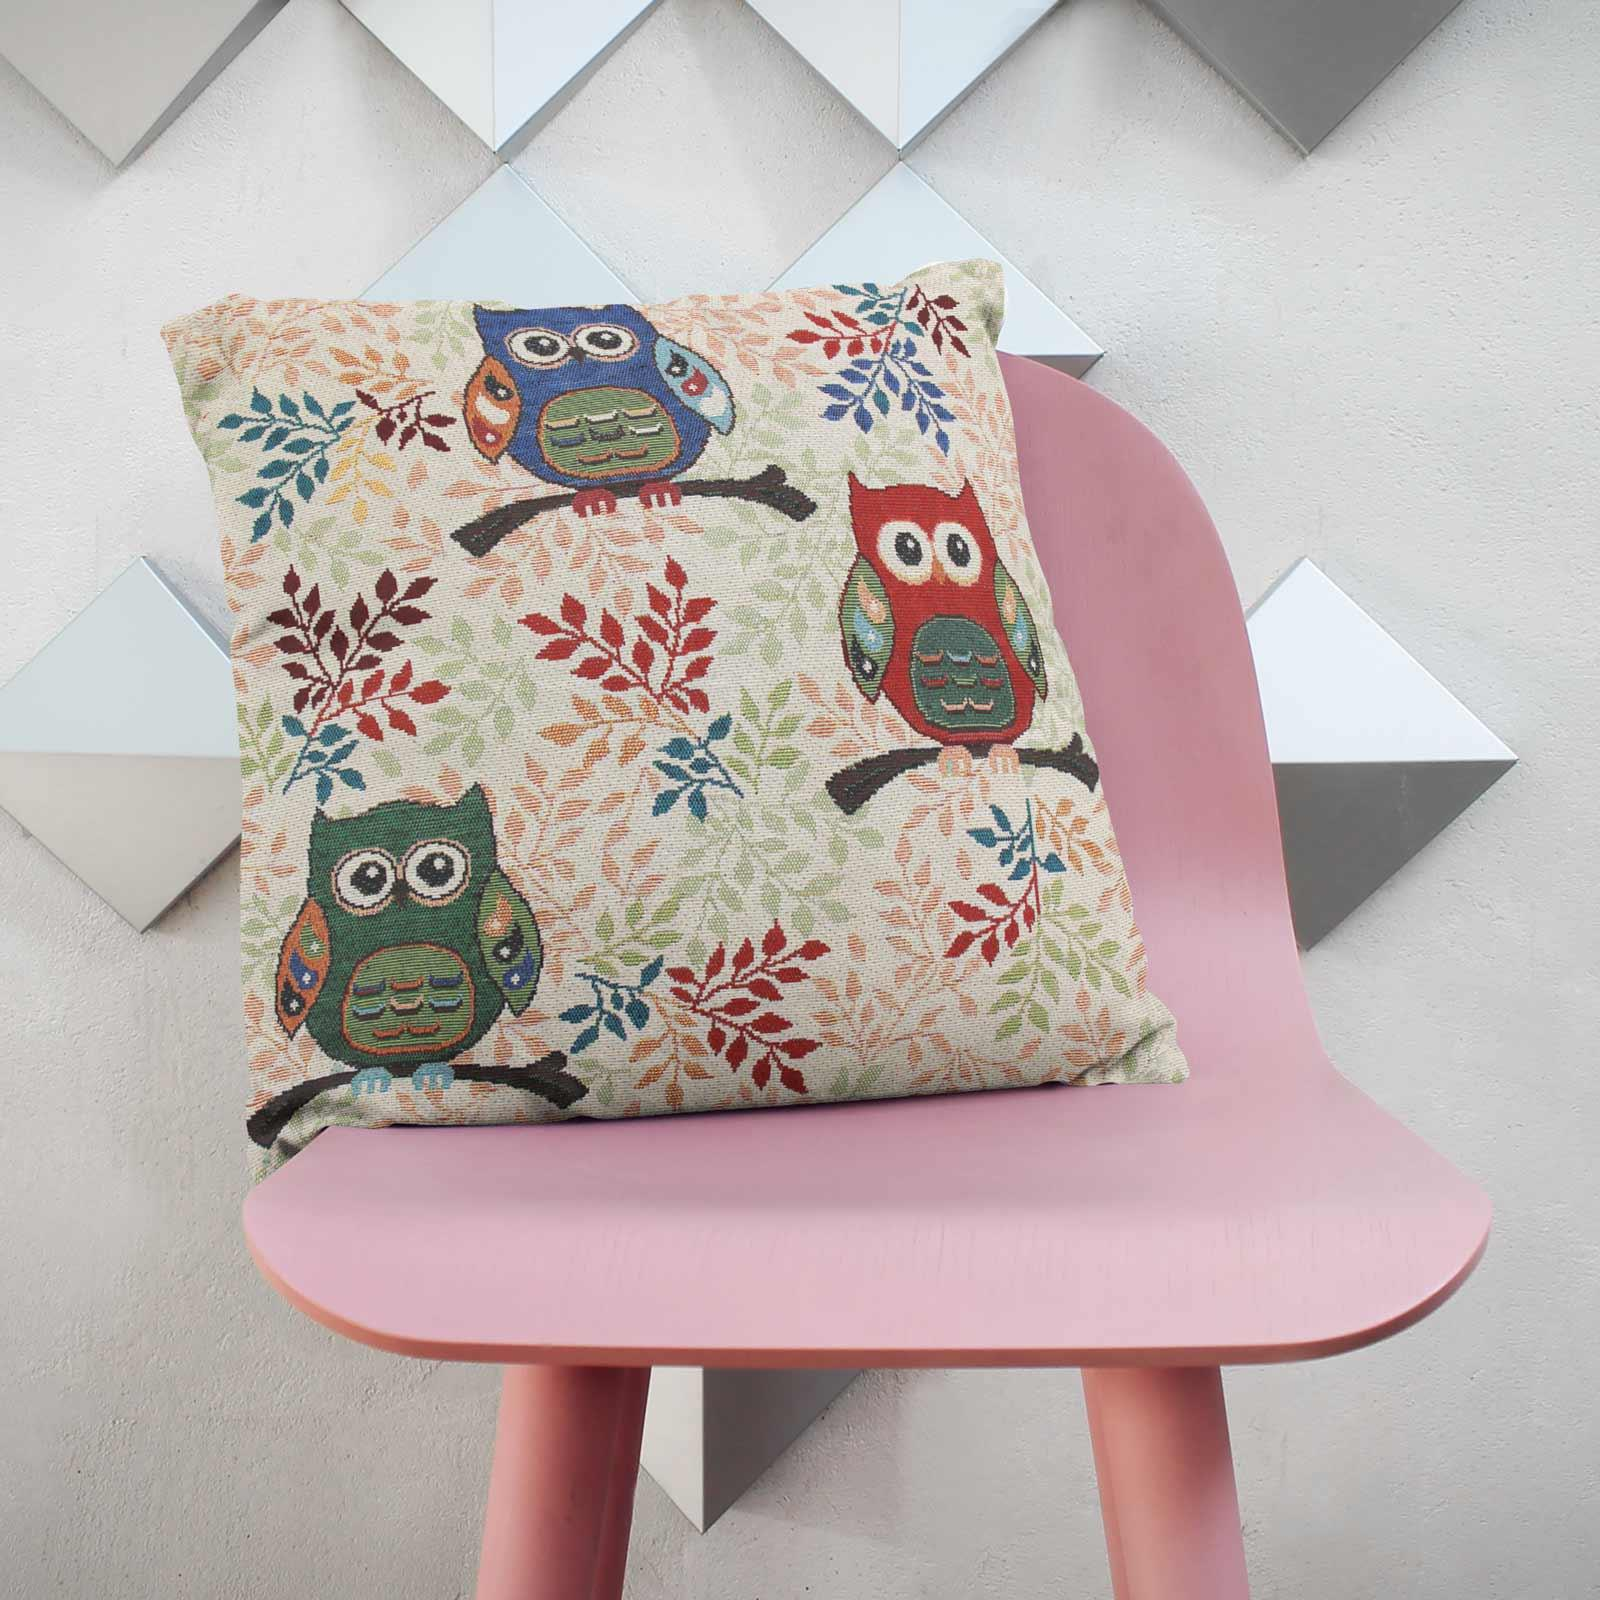 Tapestry-Cushion-Covers-Vintage-Pillow-Cover-Collection-18-034-45cm-Filled-Cushions thumbnail 208